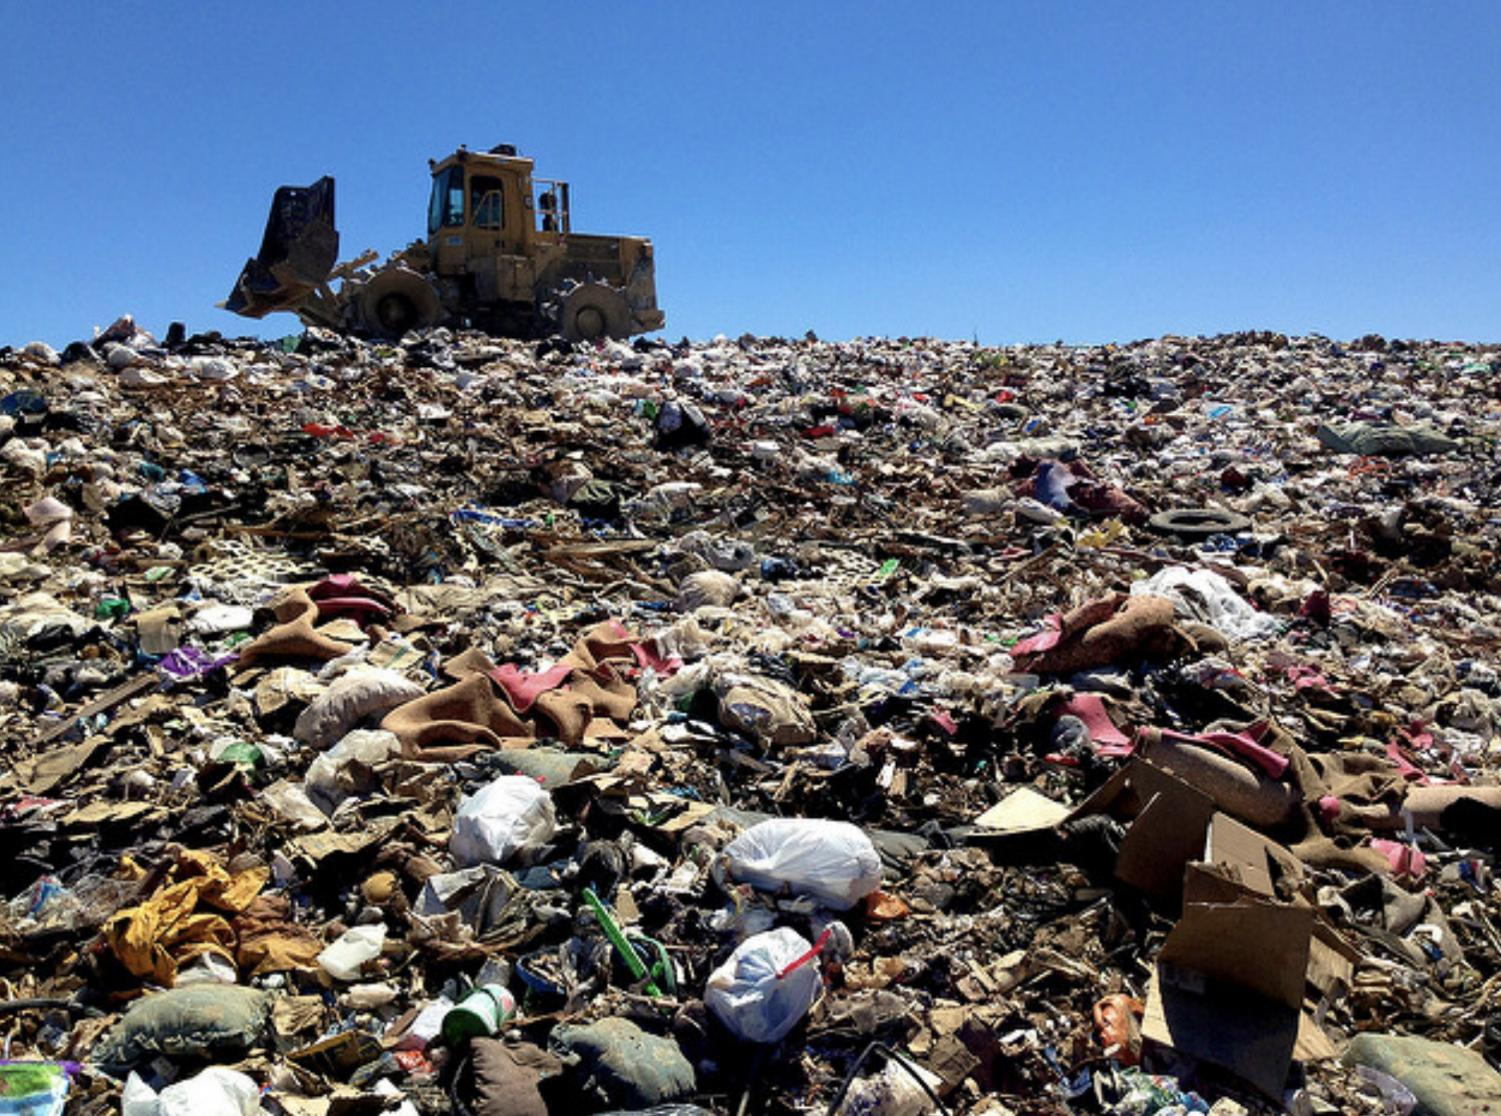 About 111 million metric tons of waste will be displaced due to China's change in policy.